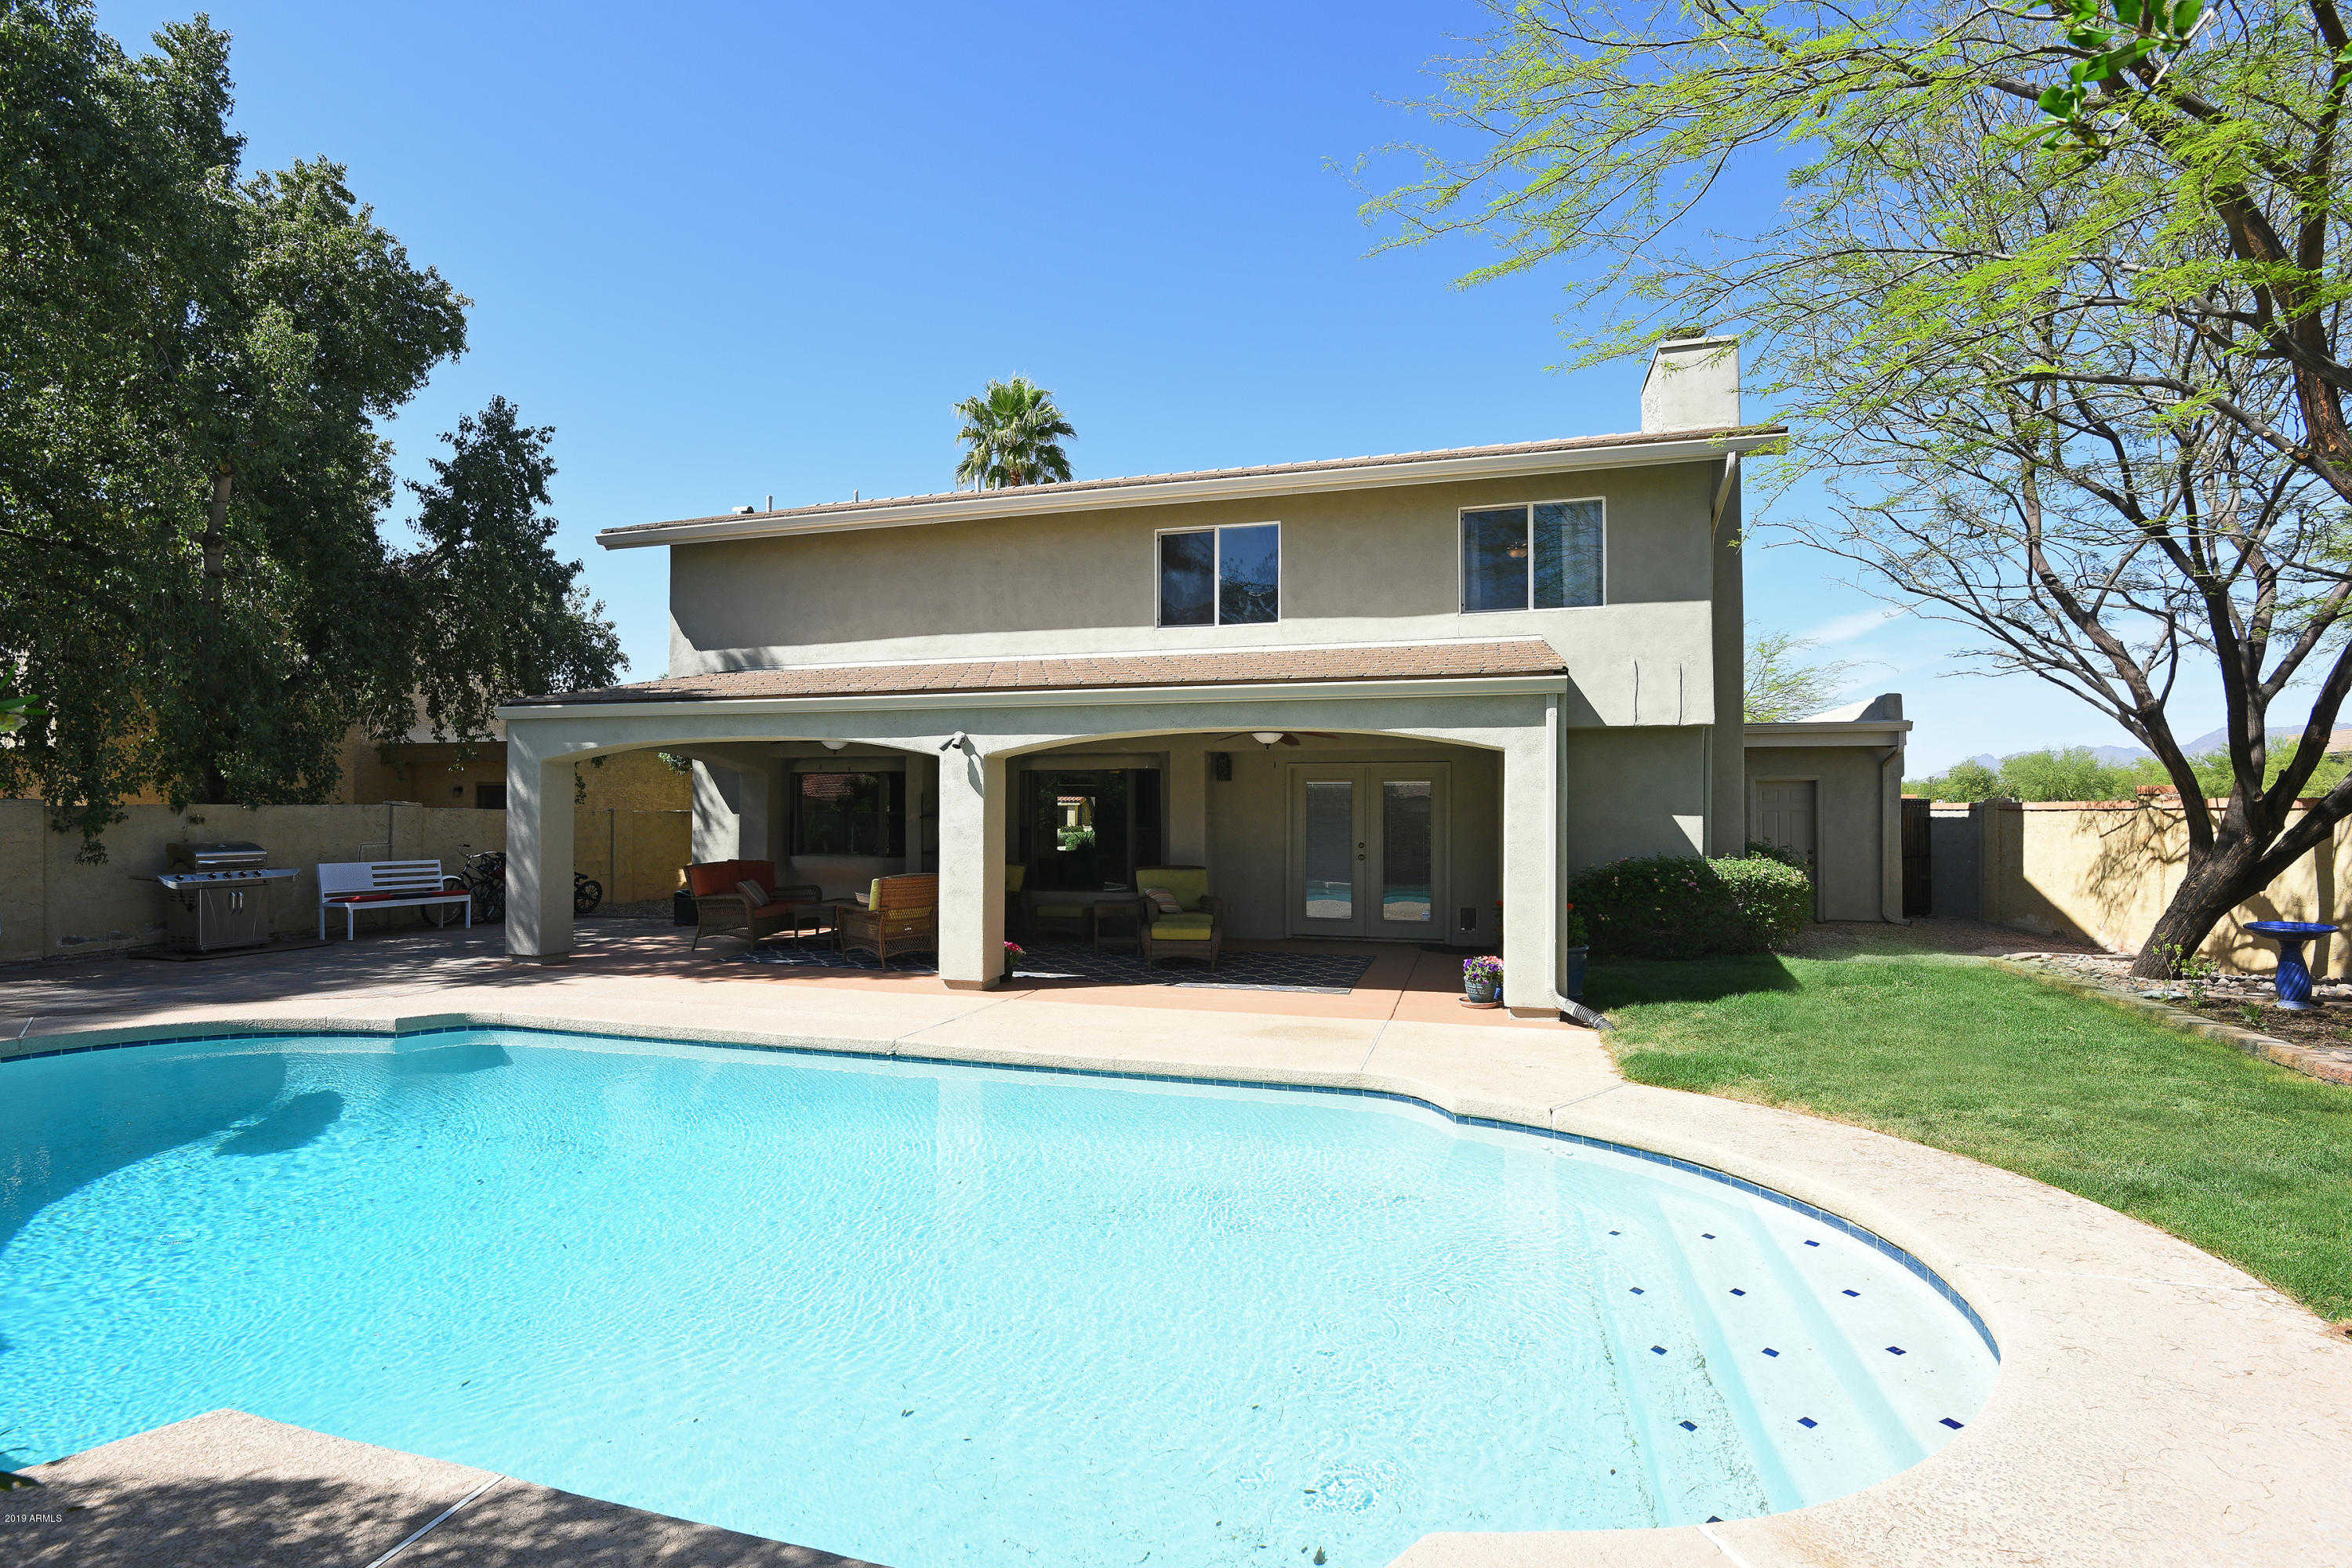 Homes for Sale in McCormick Ranch - Patty Bryant - Mission